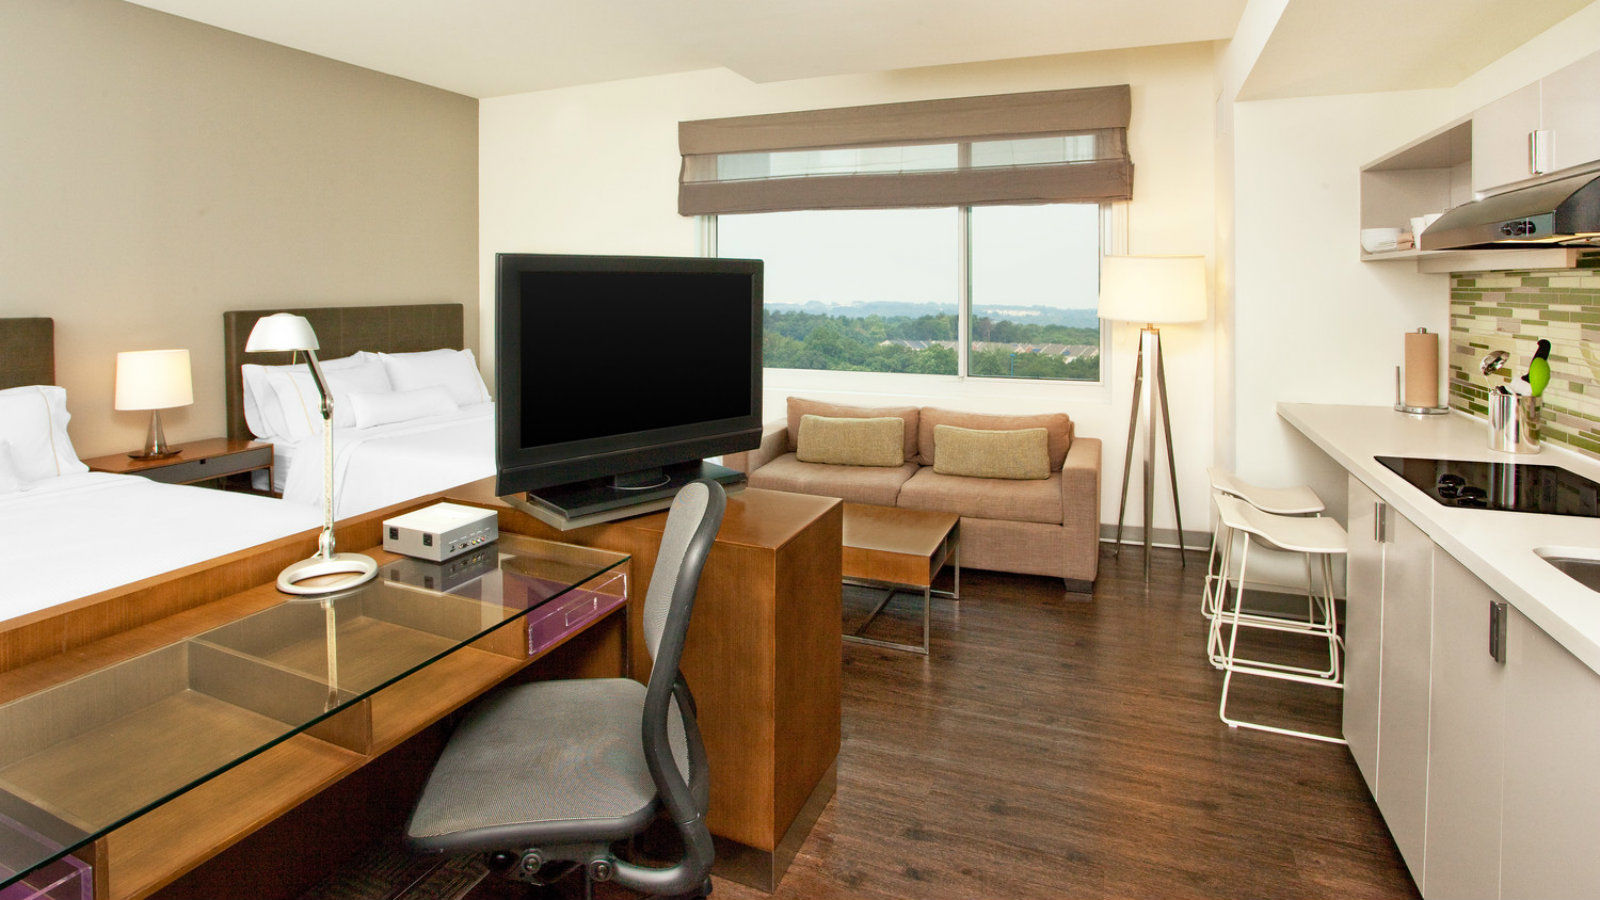 Arundel Mills Accommodations - Accessible Studio